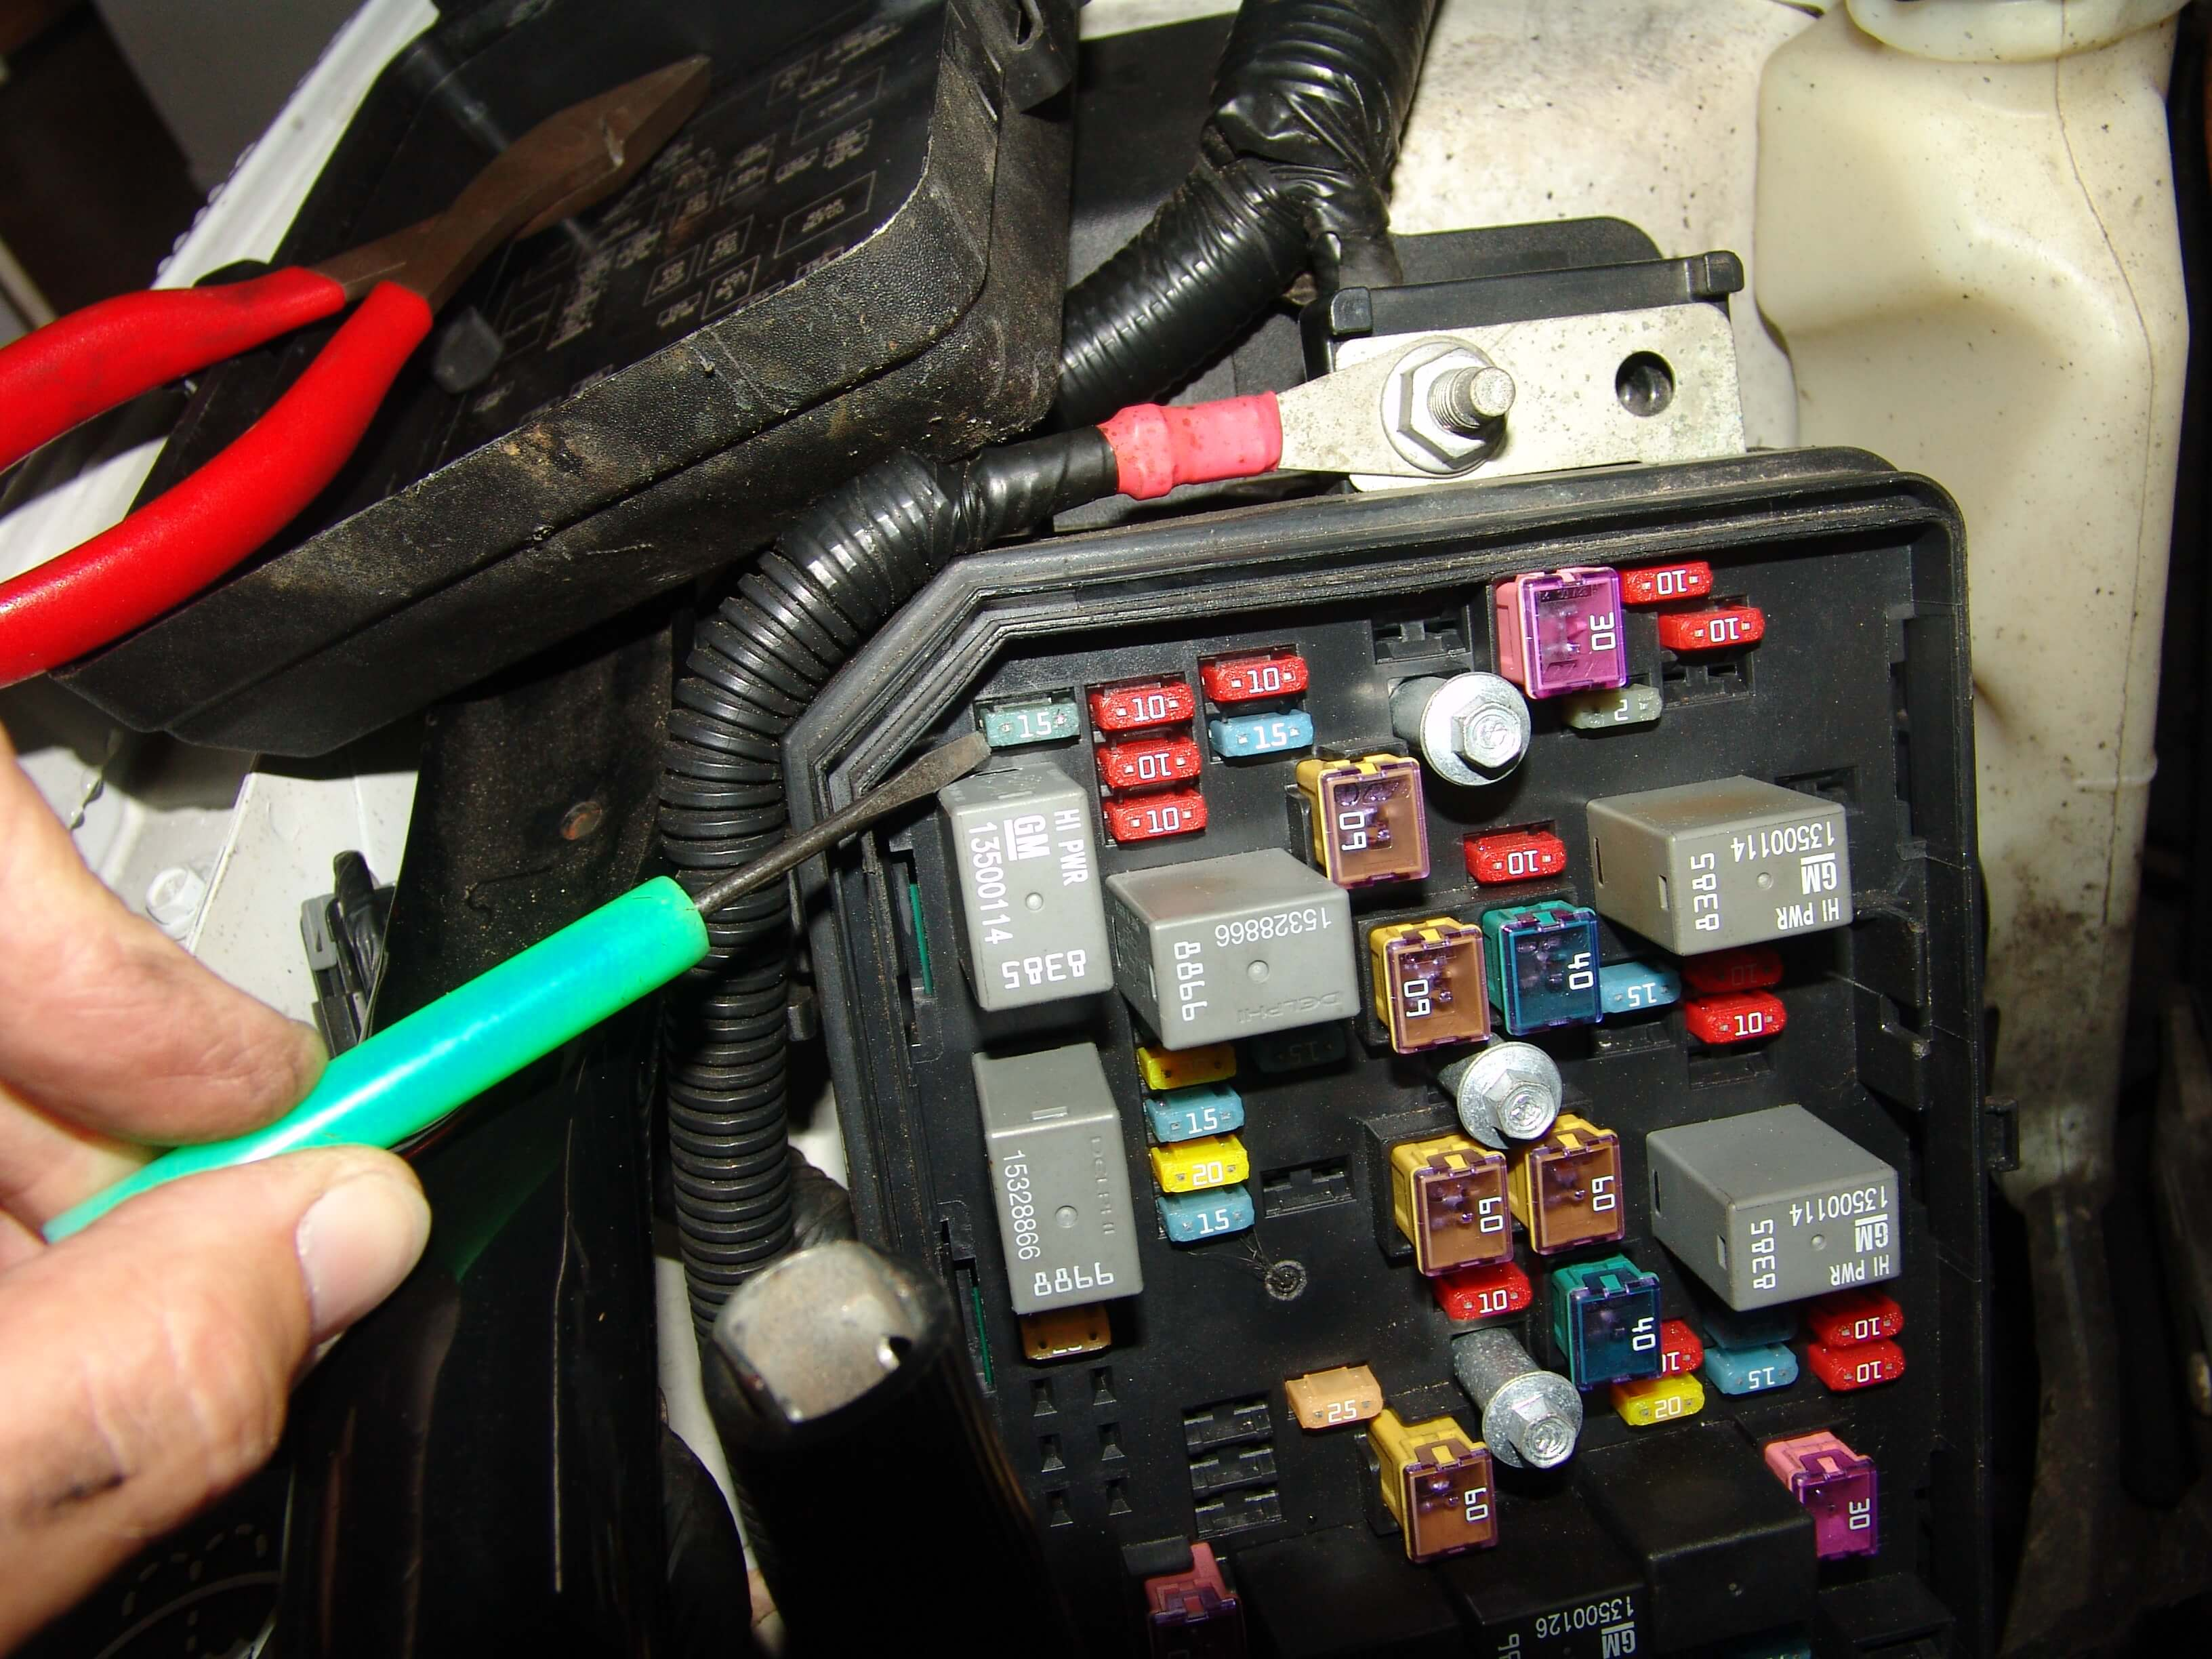 2007 Chevrolet Uplander Fuse Box Location Sparky S Answers 2011 Chevrolet Impala Fuel Pump Not Working